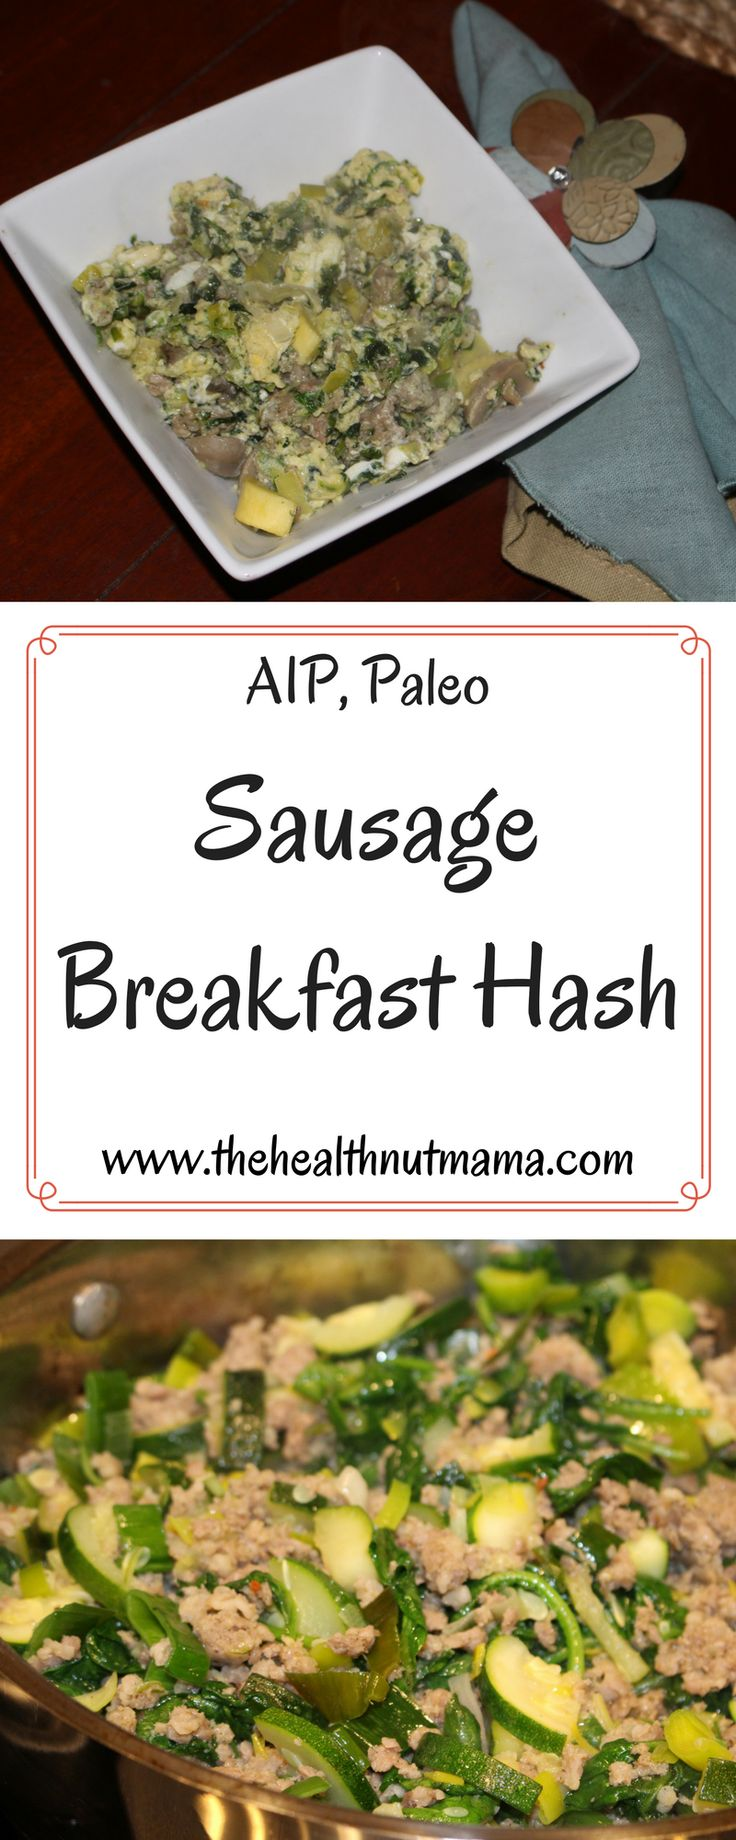 Paleo AIP Sausage Breakfast Hash - I love to make this ahead so that my mornings are so much easier. Quick, Delicious & Healthy! www.thehealthnutmama.com #aip #paleo #breakfast